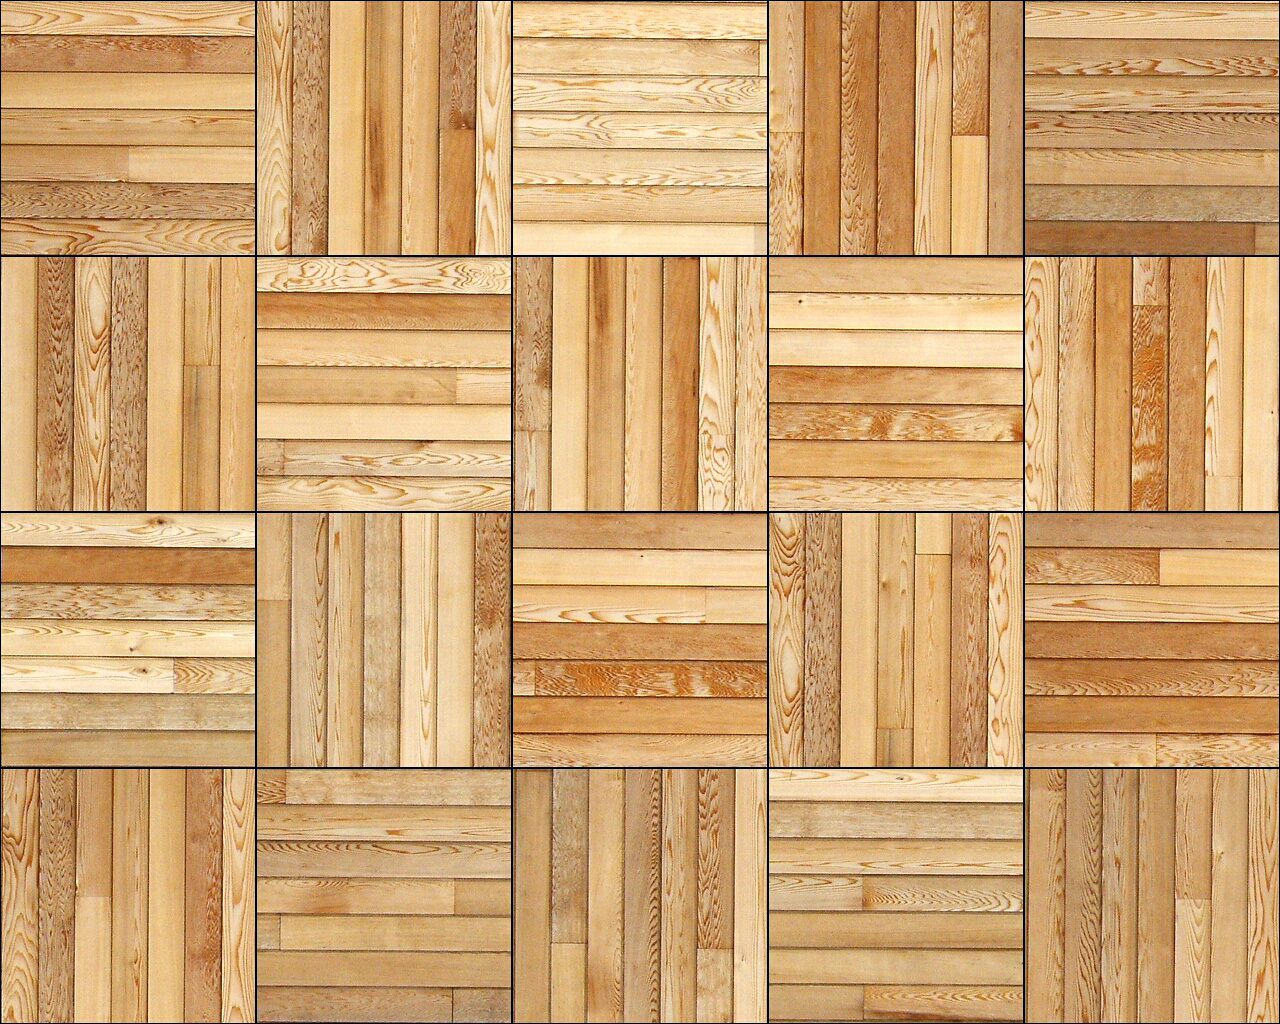 Foundation dezin decor floor tiles design for Hardwood floor panels